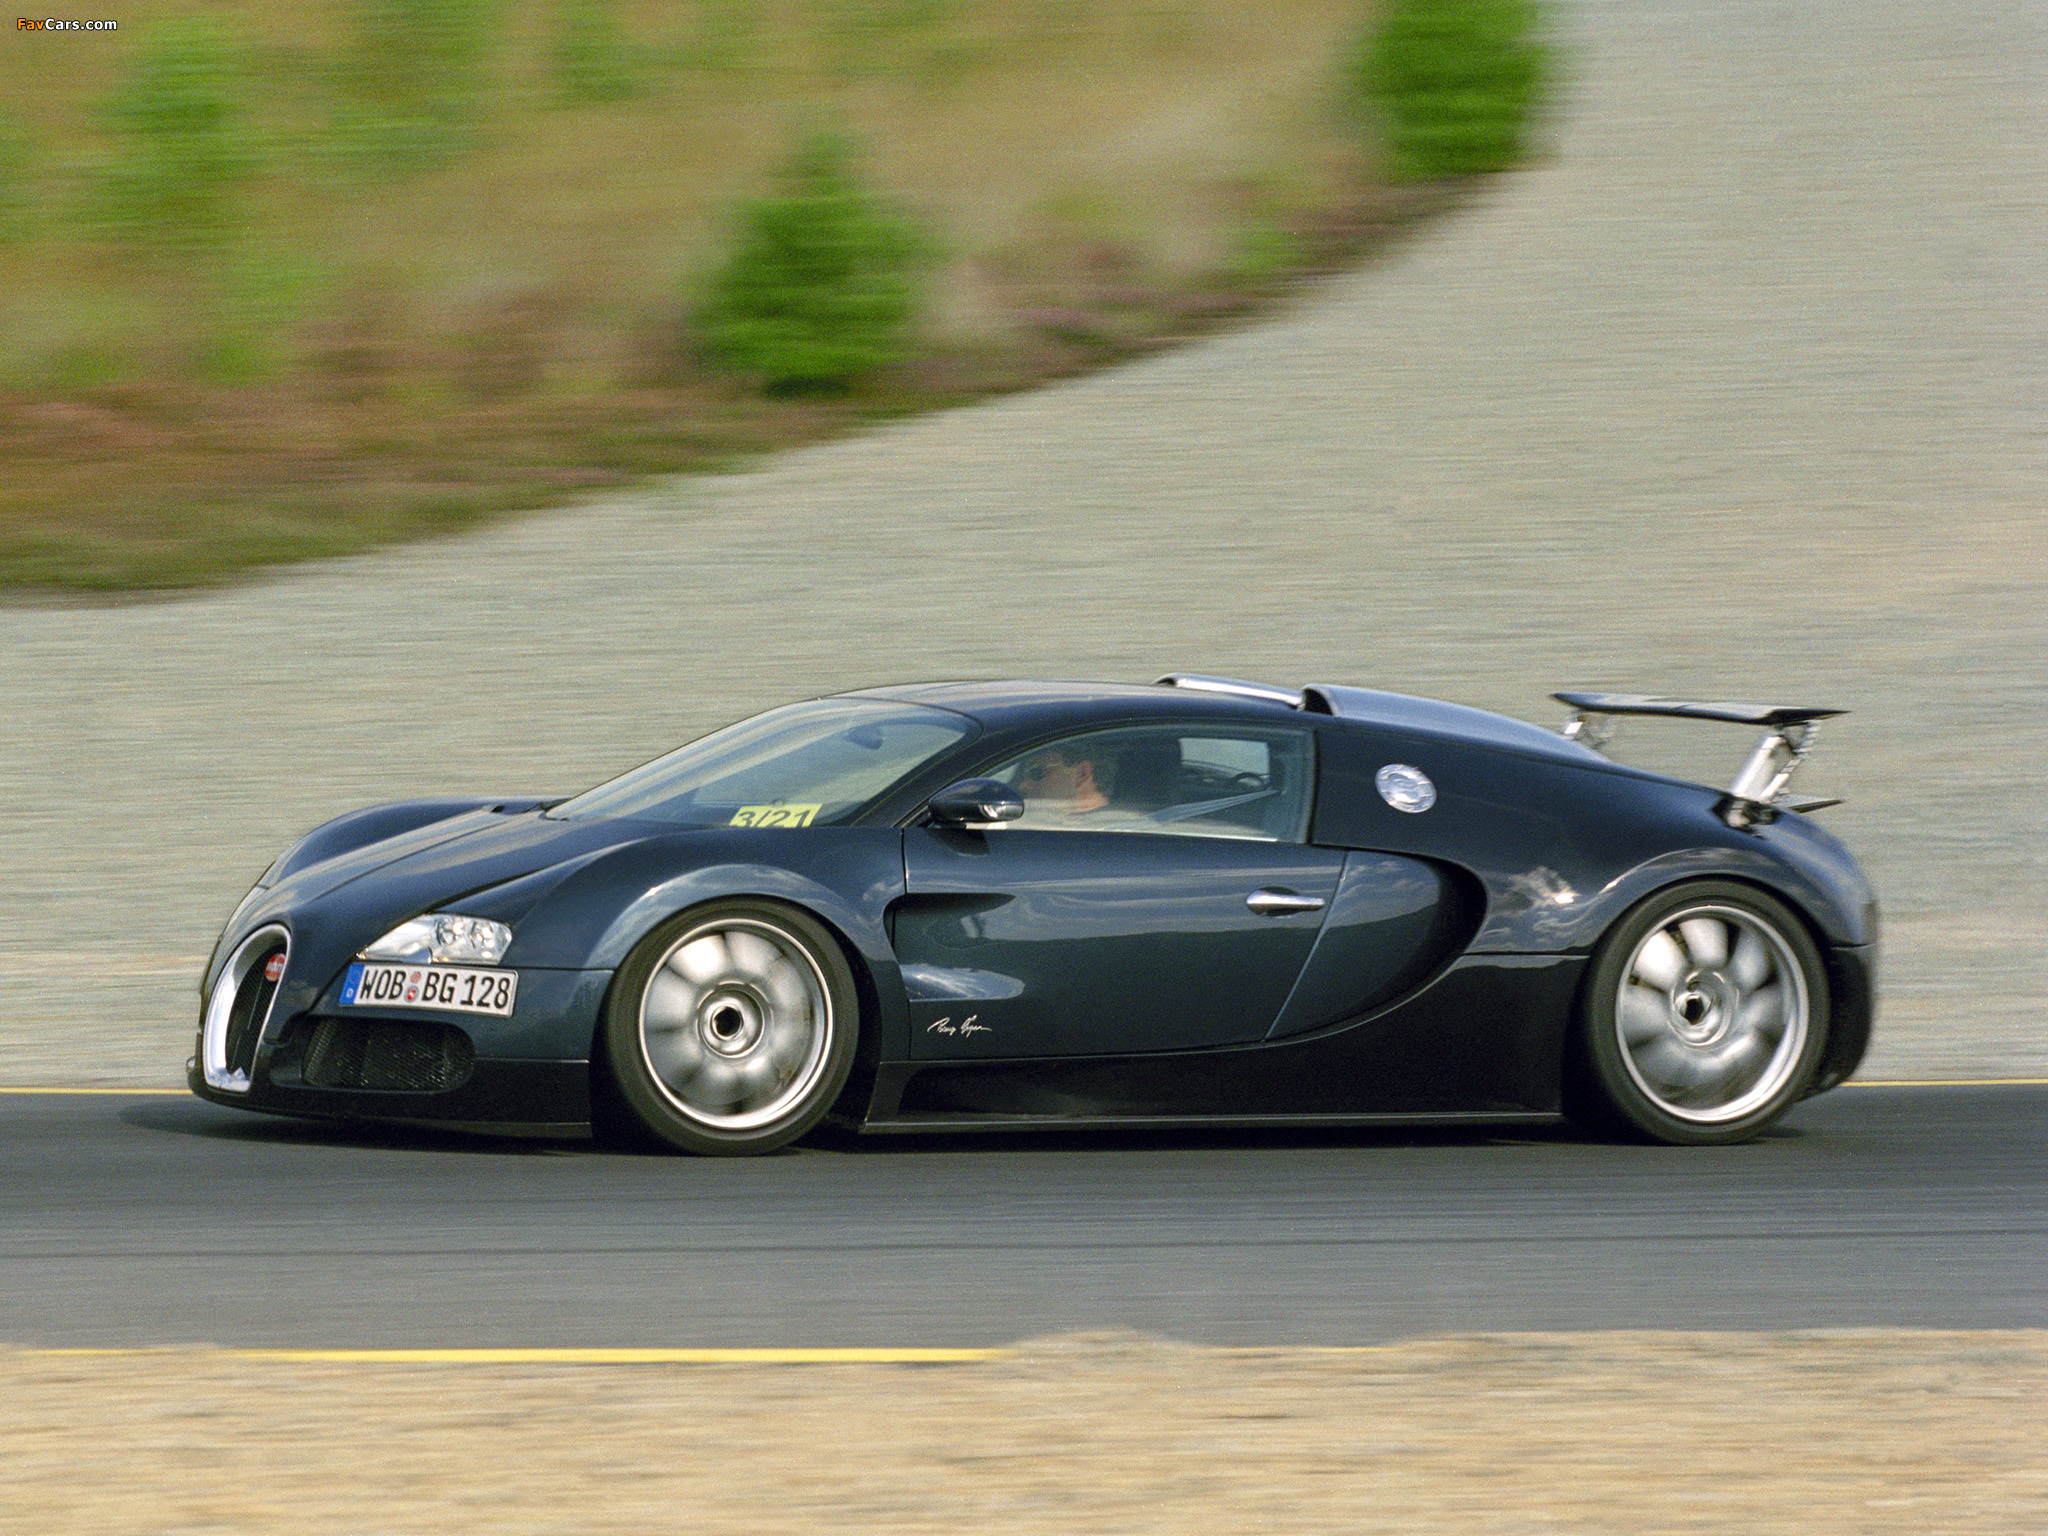 Wallpapers of Bugatti EB 164 Veyron Prototype 2004 2048x1536